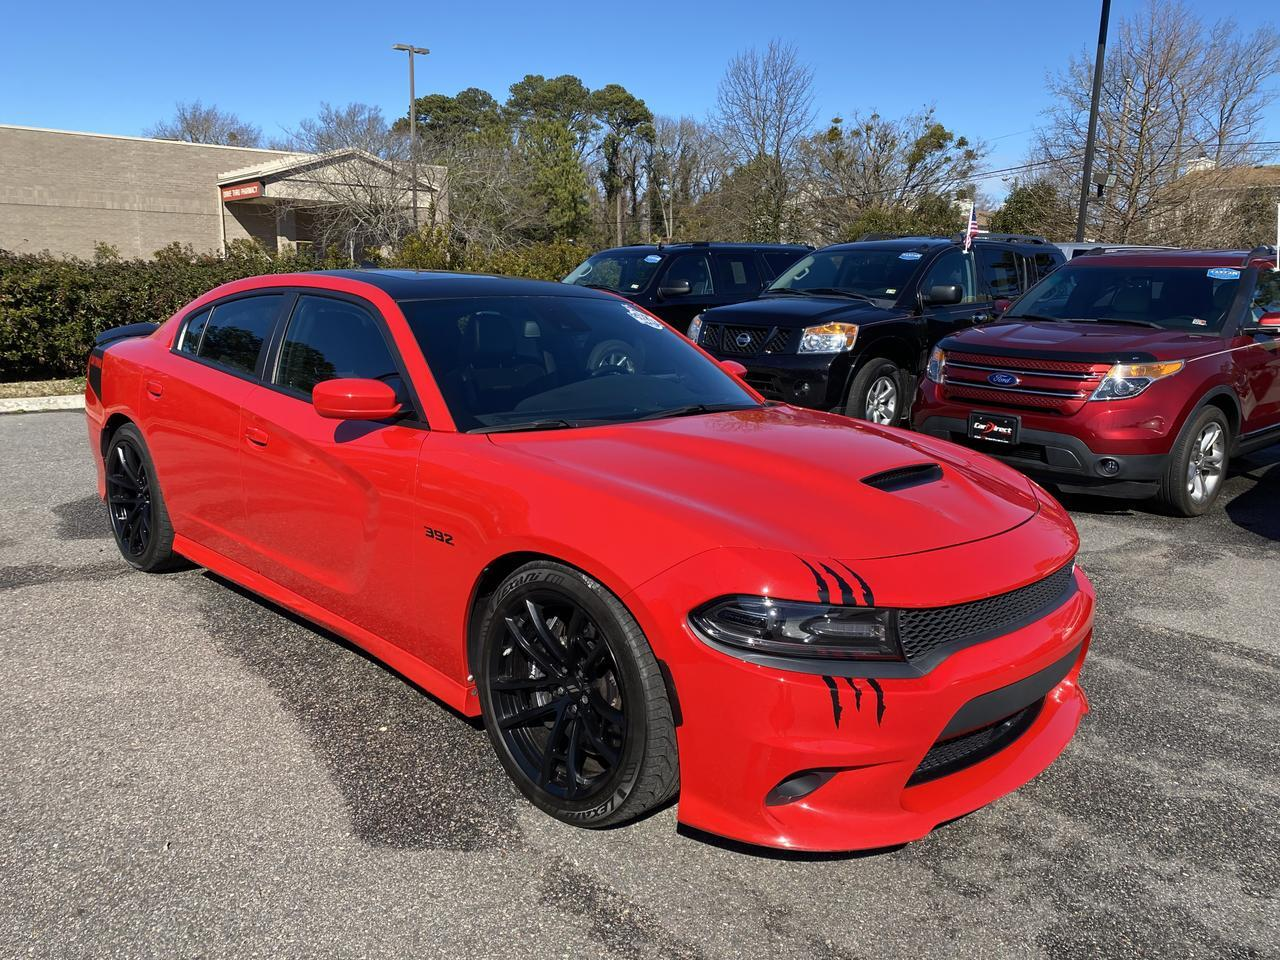 2017 DODGE CHARGER R/T 392 DAYTONA RWD, ONE OWNER, BEATS SOUND SYSTEM, REMOTE START, SUNROOF, ONLY 34K MILES! Virginia Beach VA